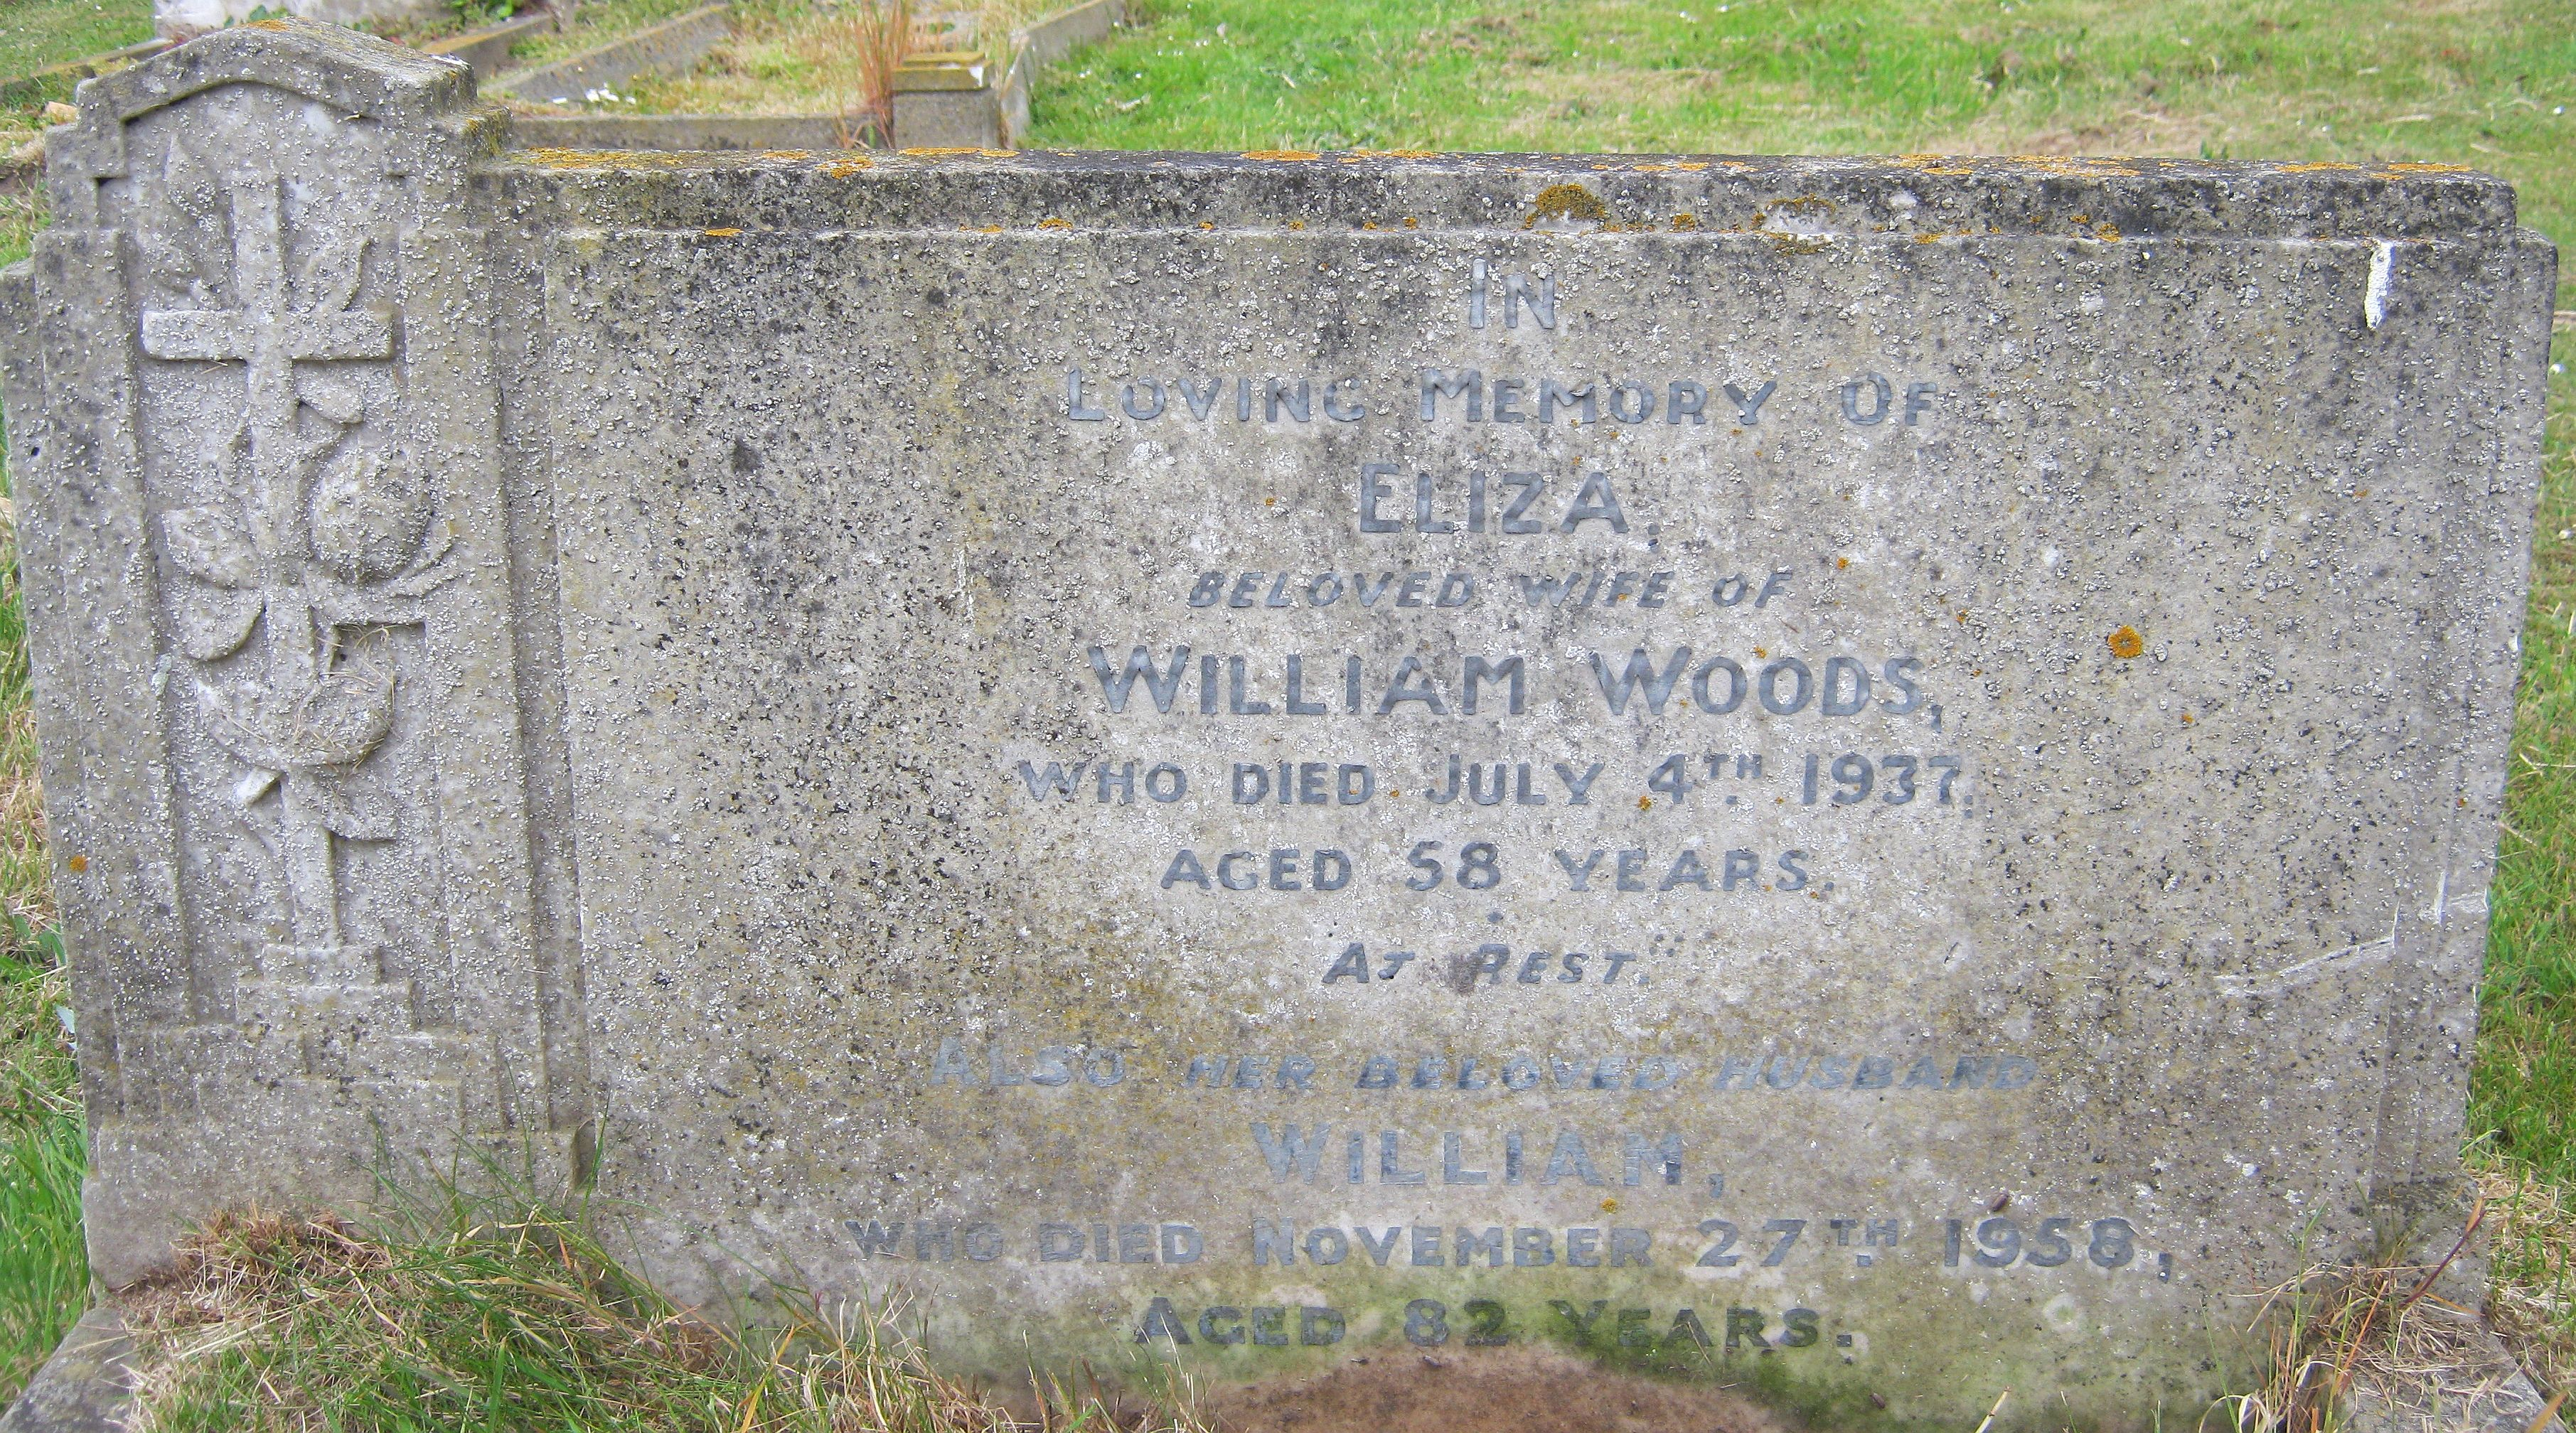 George William Woods